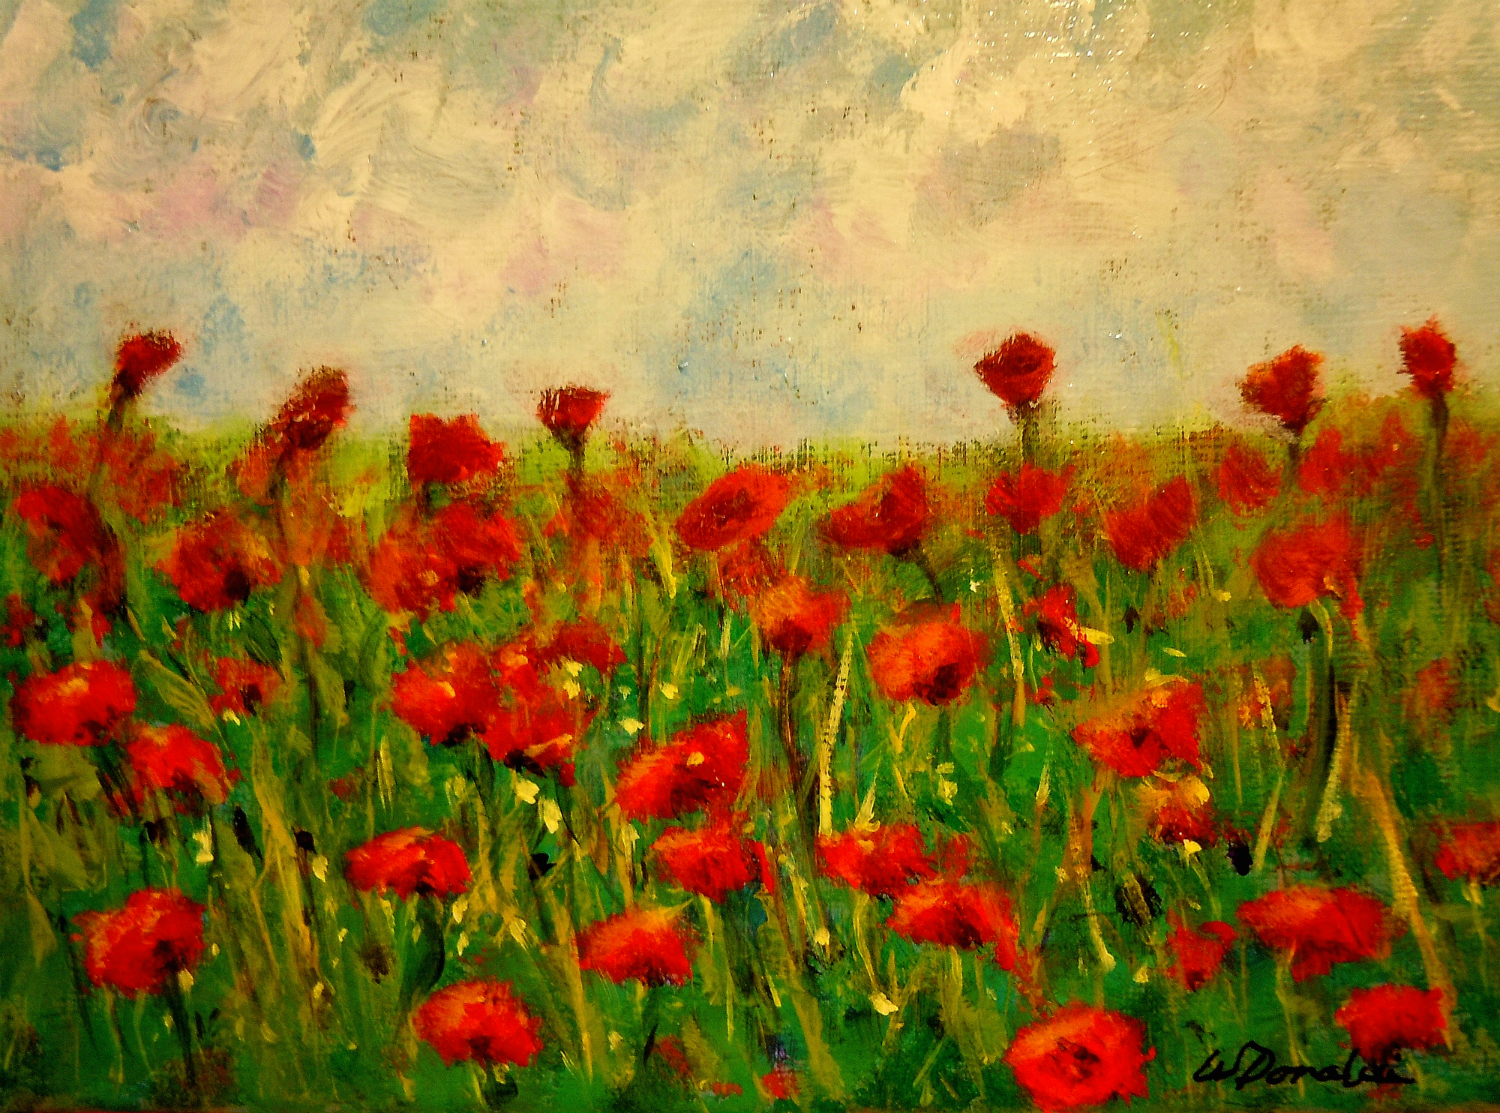 Painting Poppies The Process Blue Heron Writes